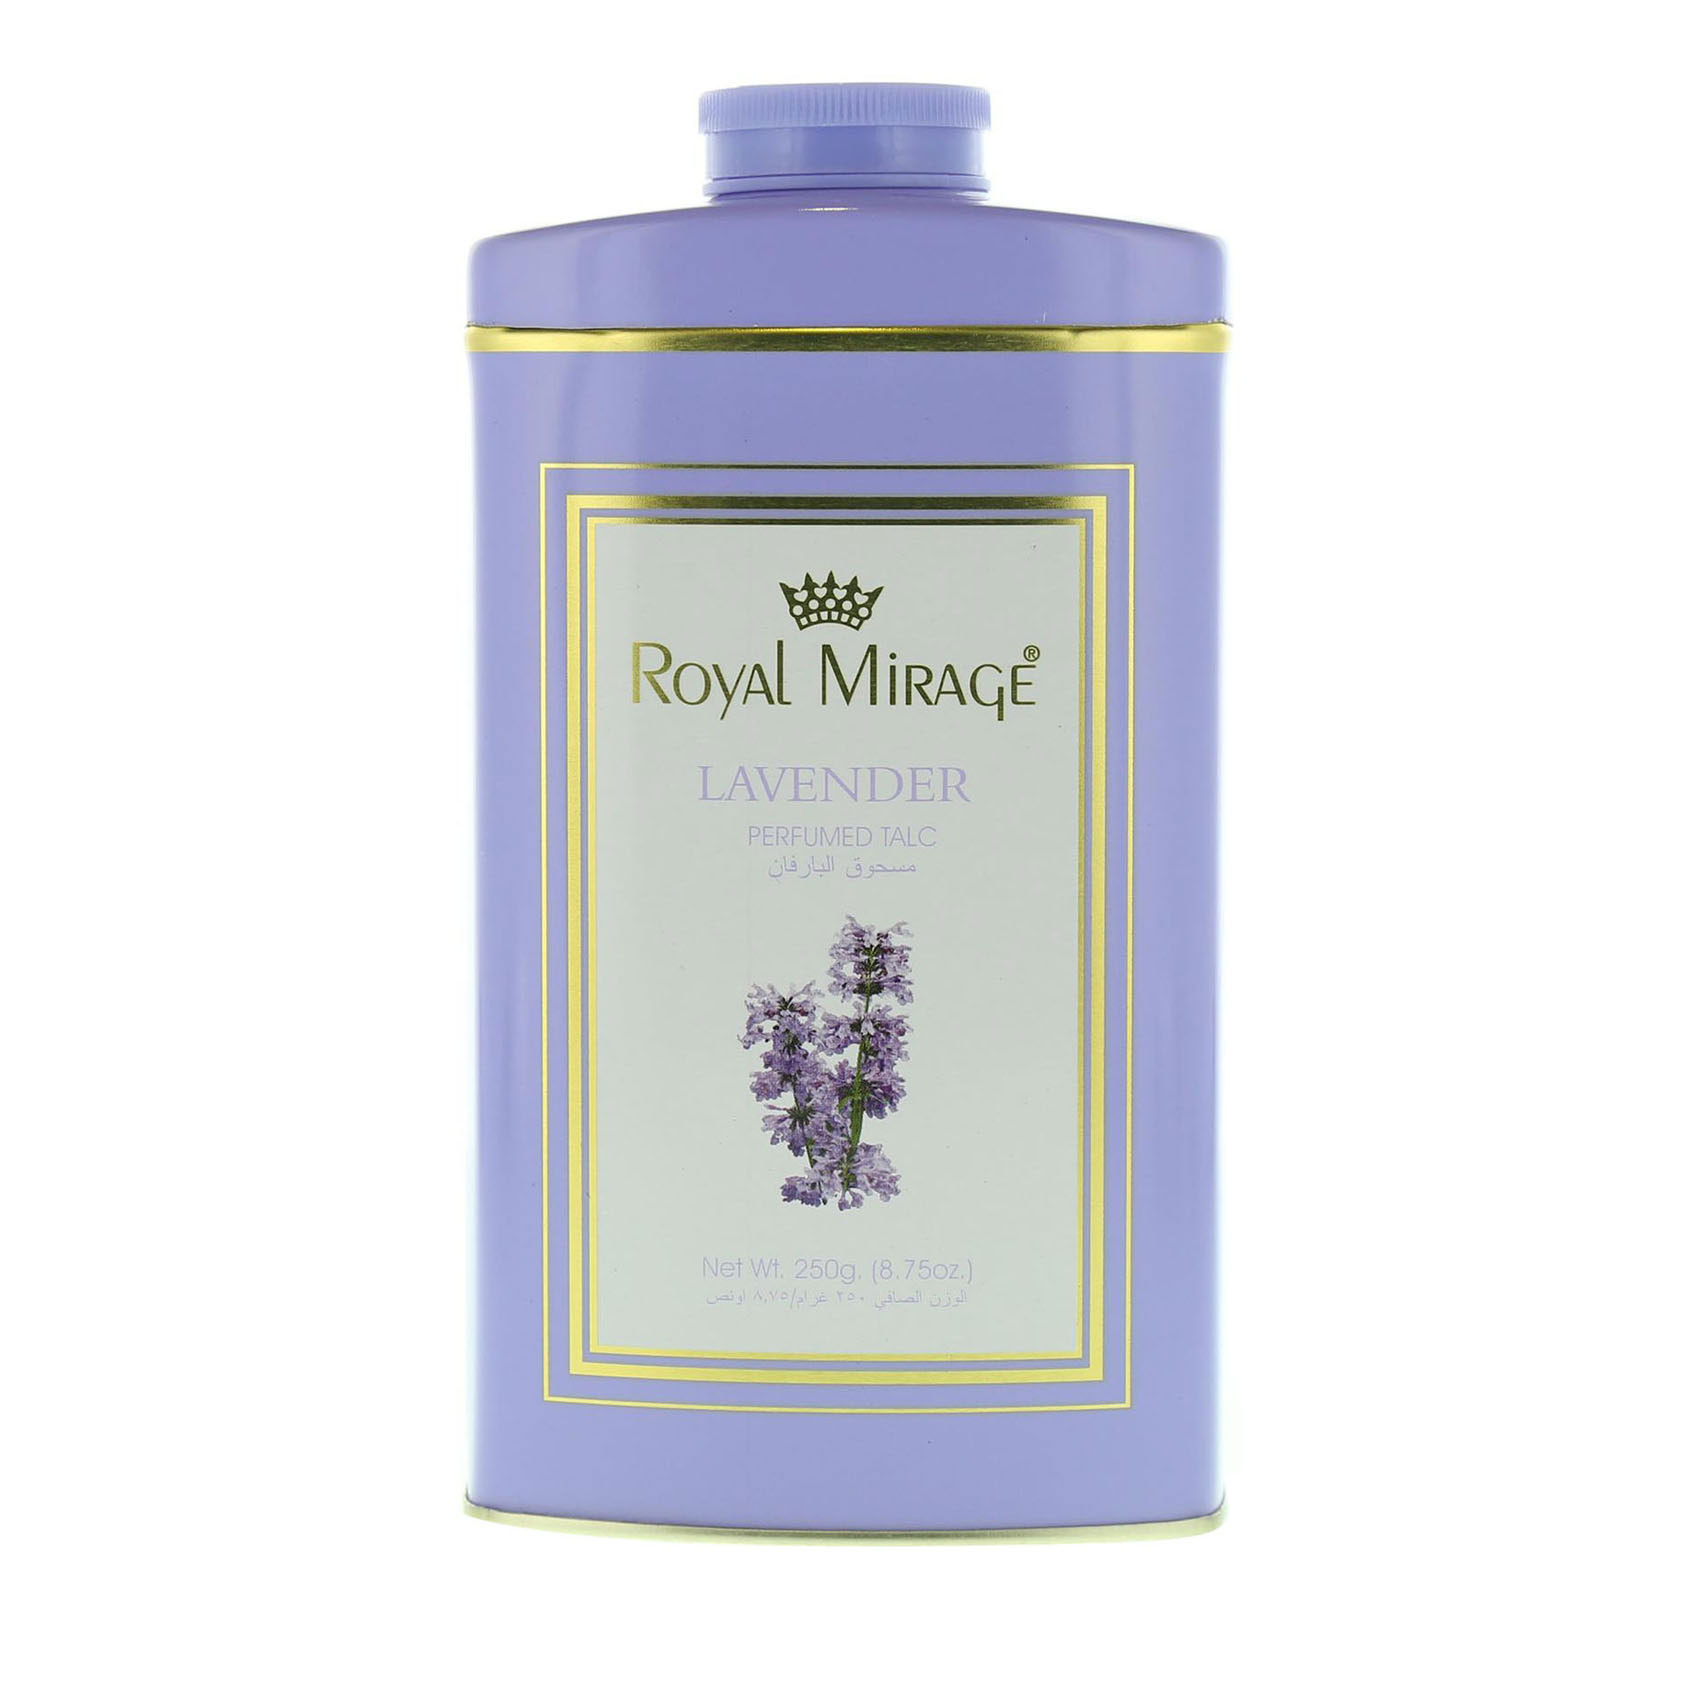 ROYAL MIRAGE TALC LAVENDER 200GM